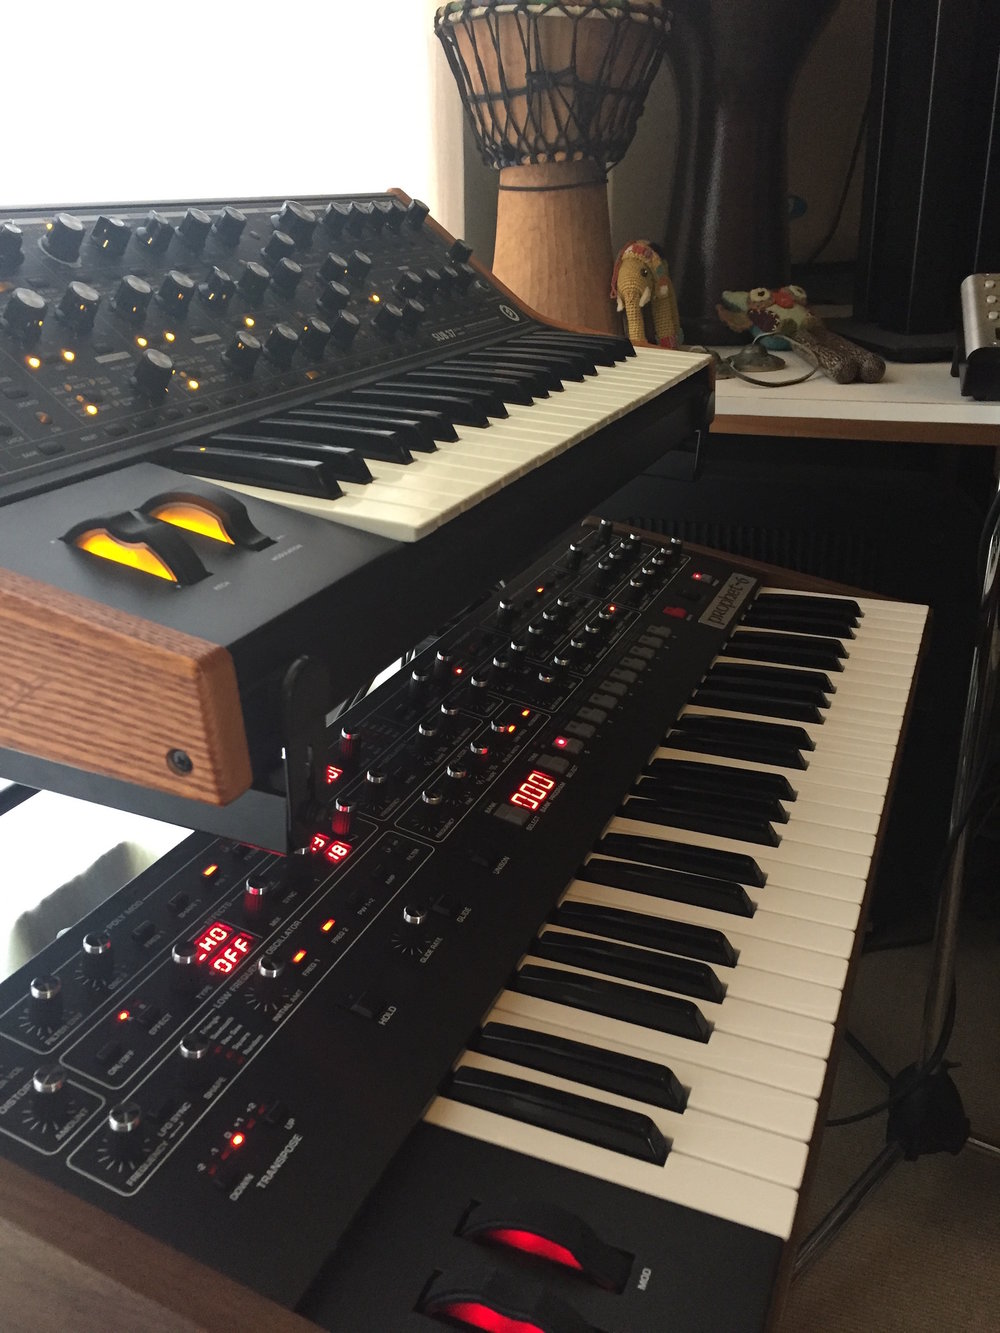 Sub37 and Prophet06